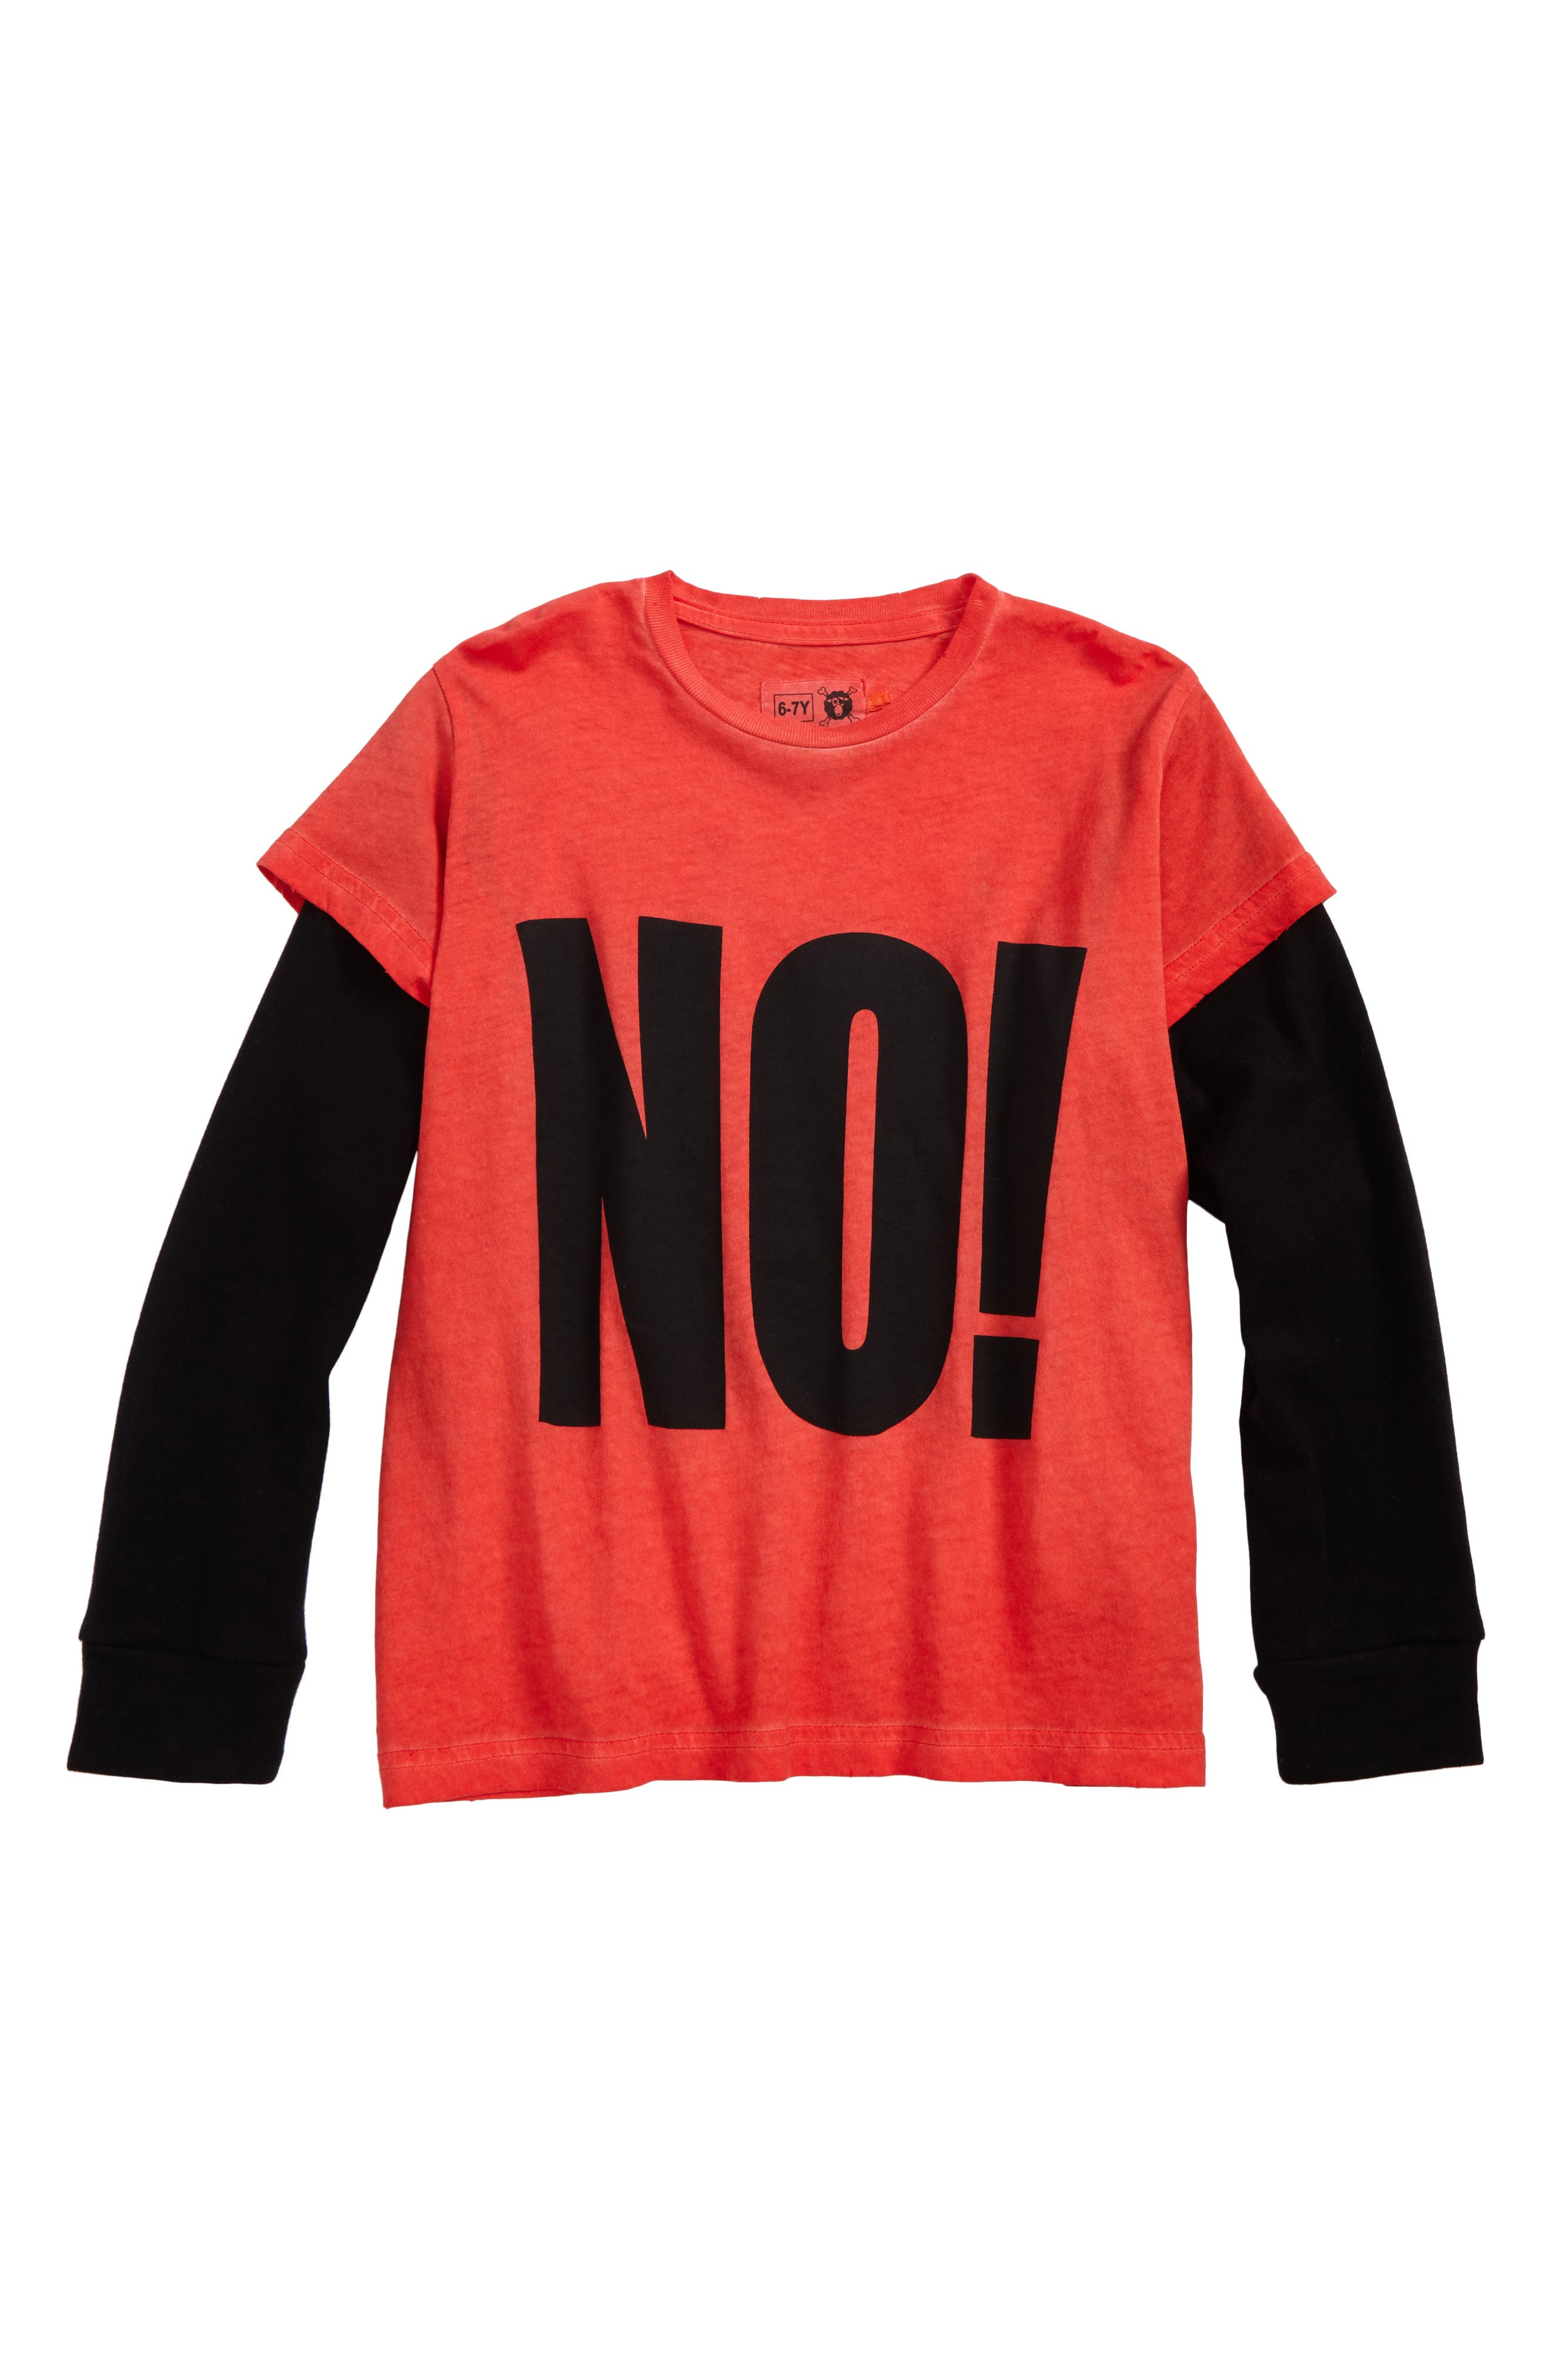 No! Graphic T-Shirt,                             Main thumbnail 1, color,                             Dyed Red